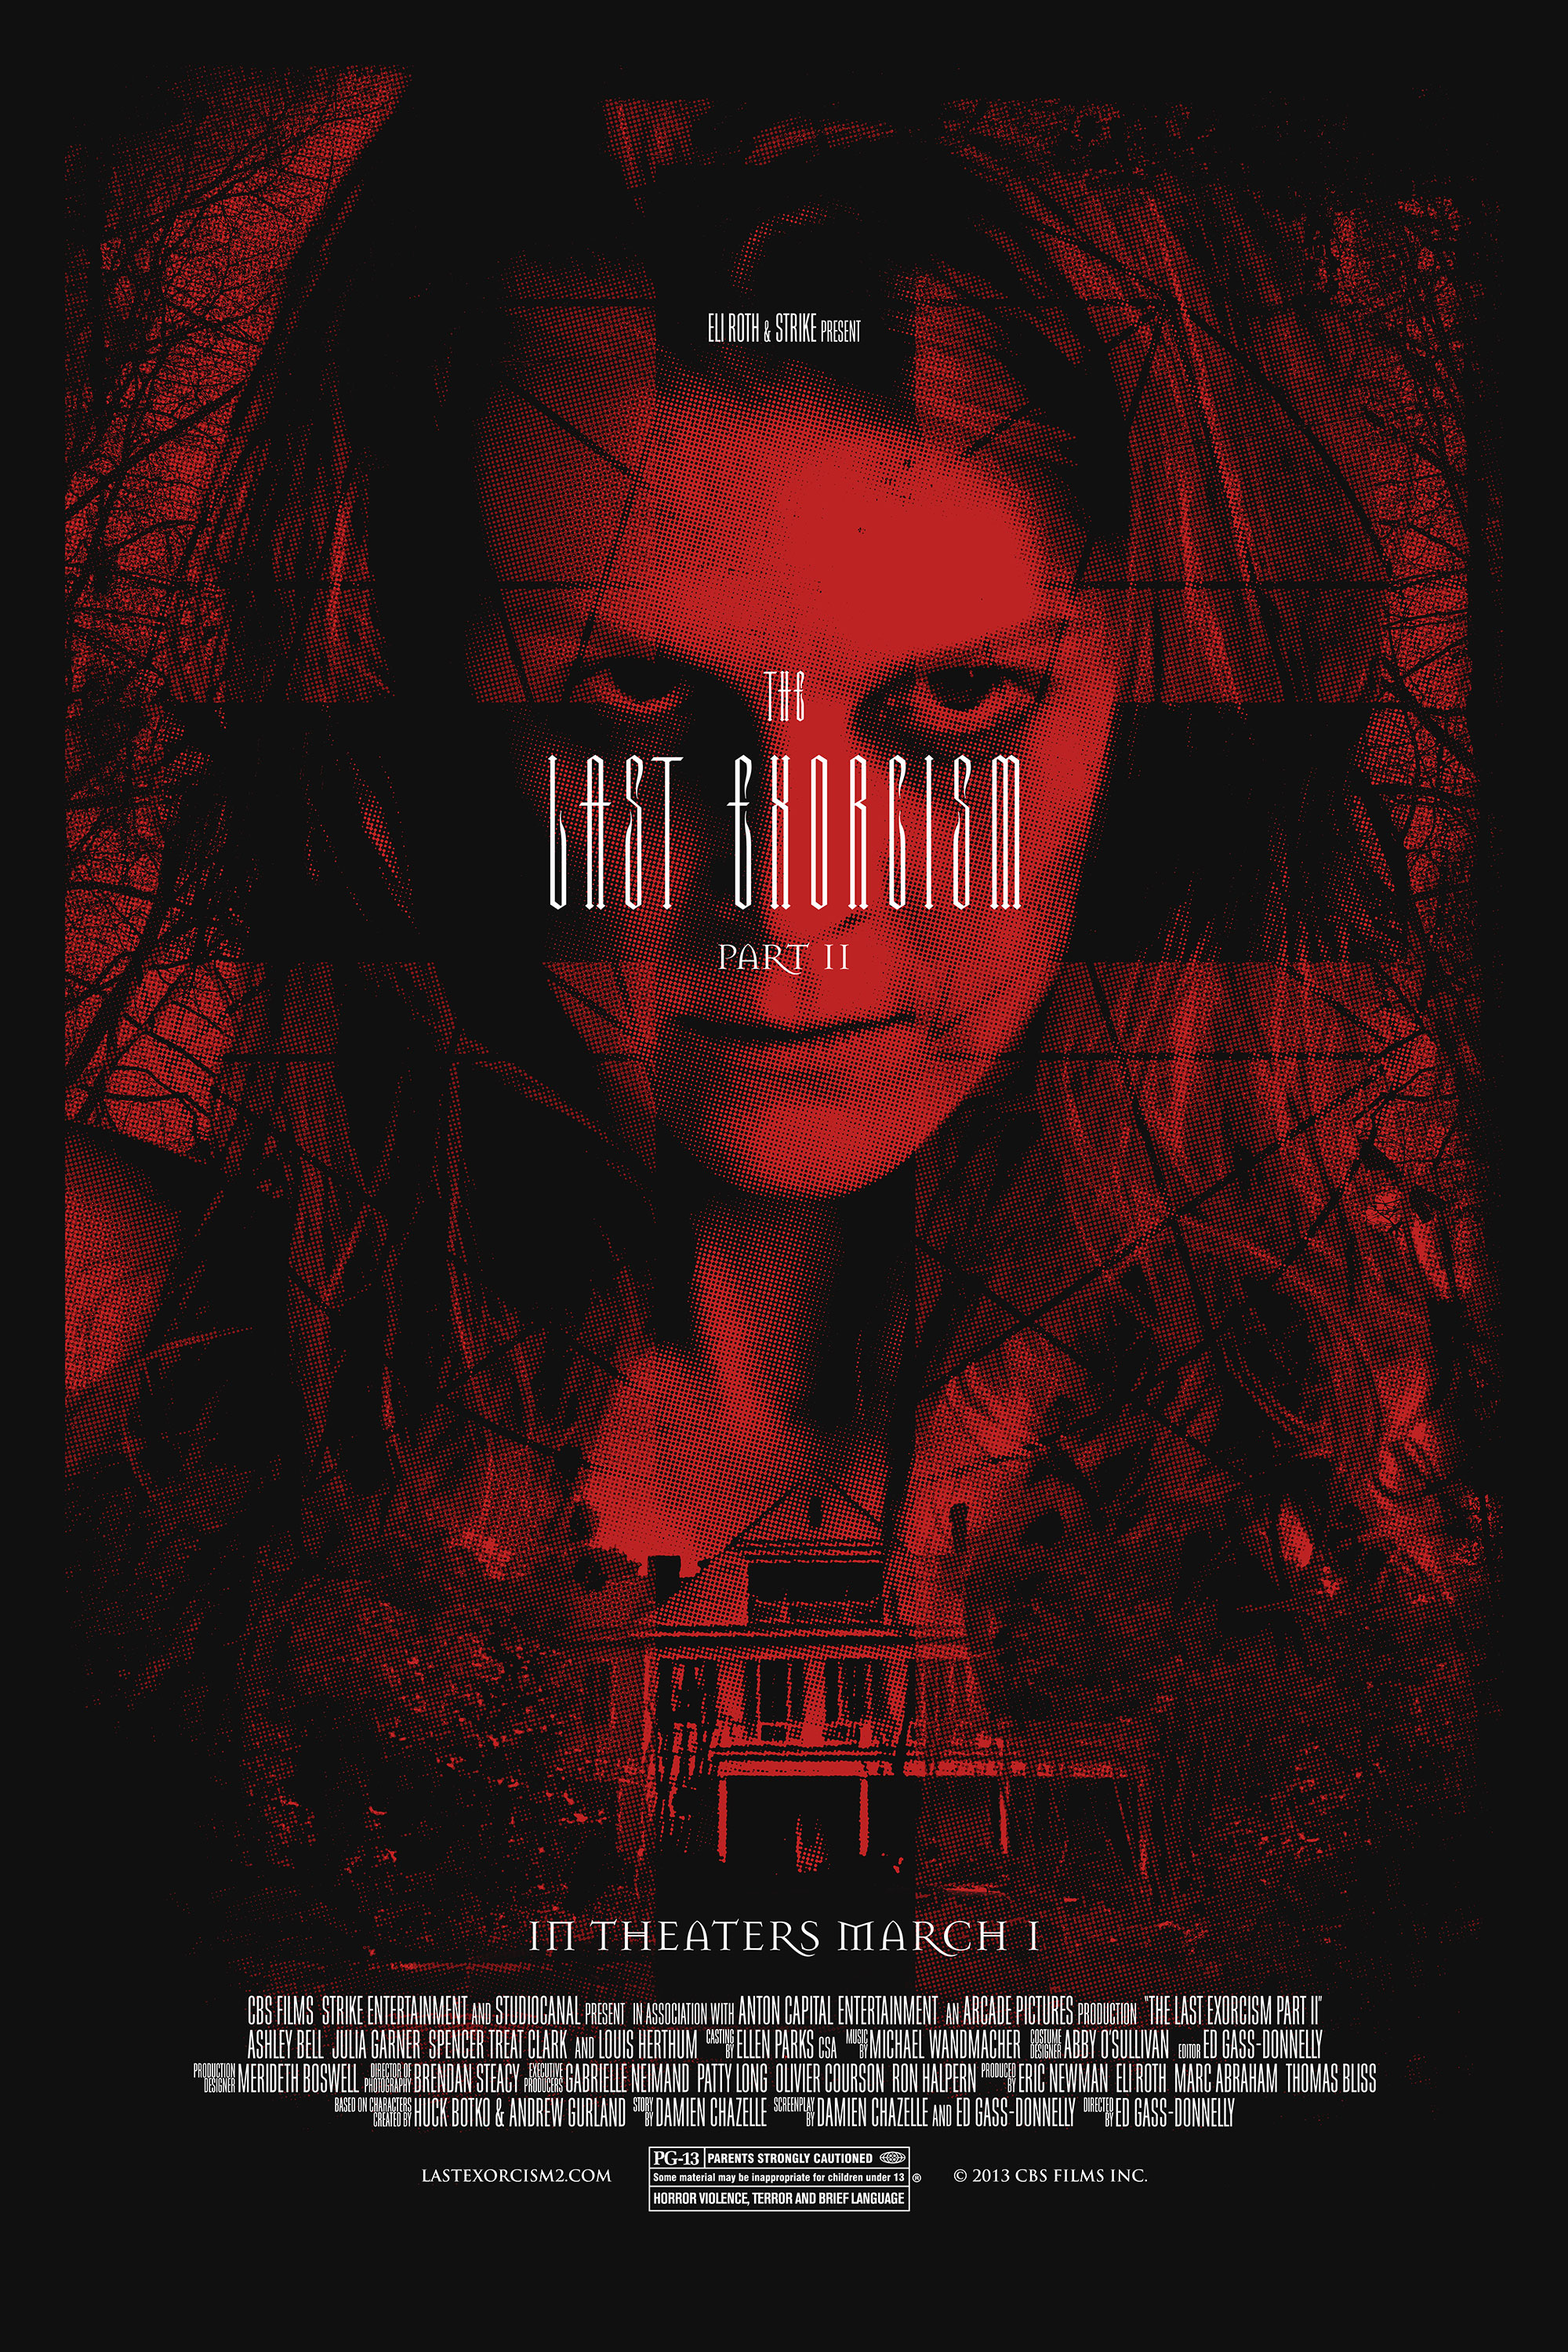 The Last Exorcism Red Limited Edition Poster